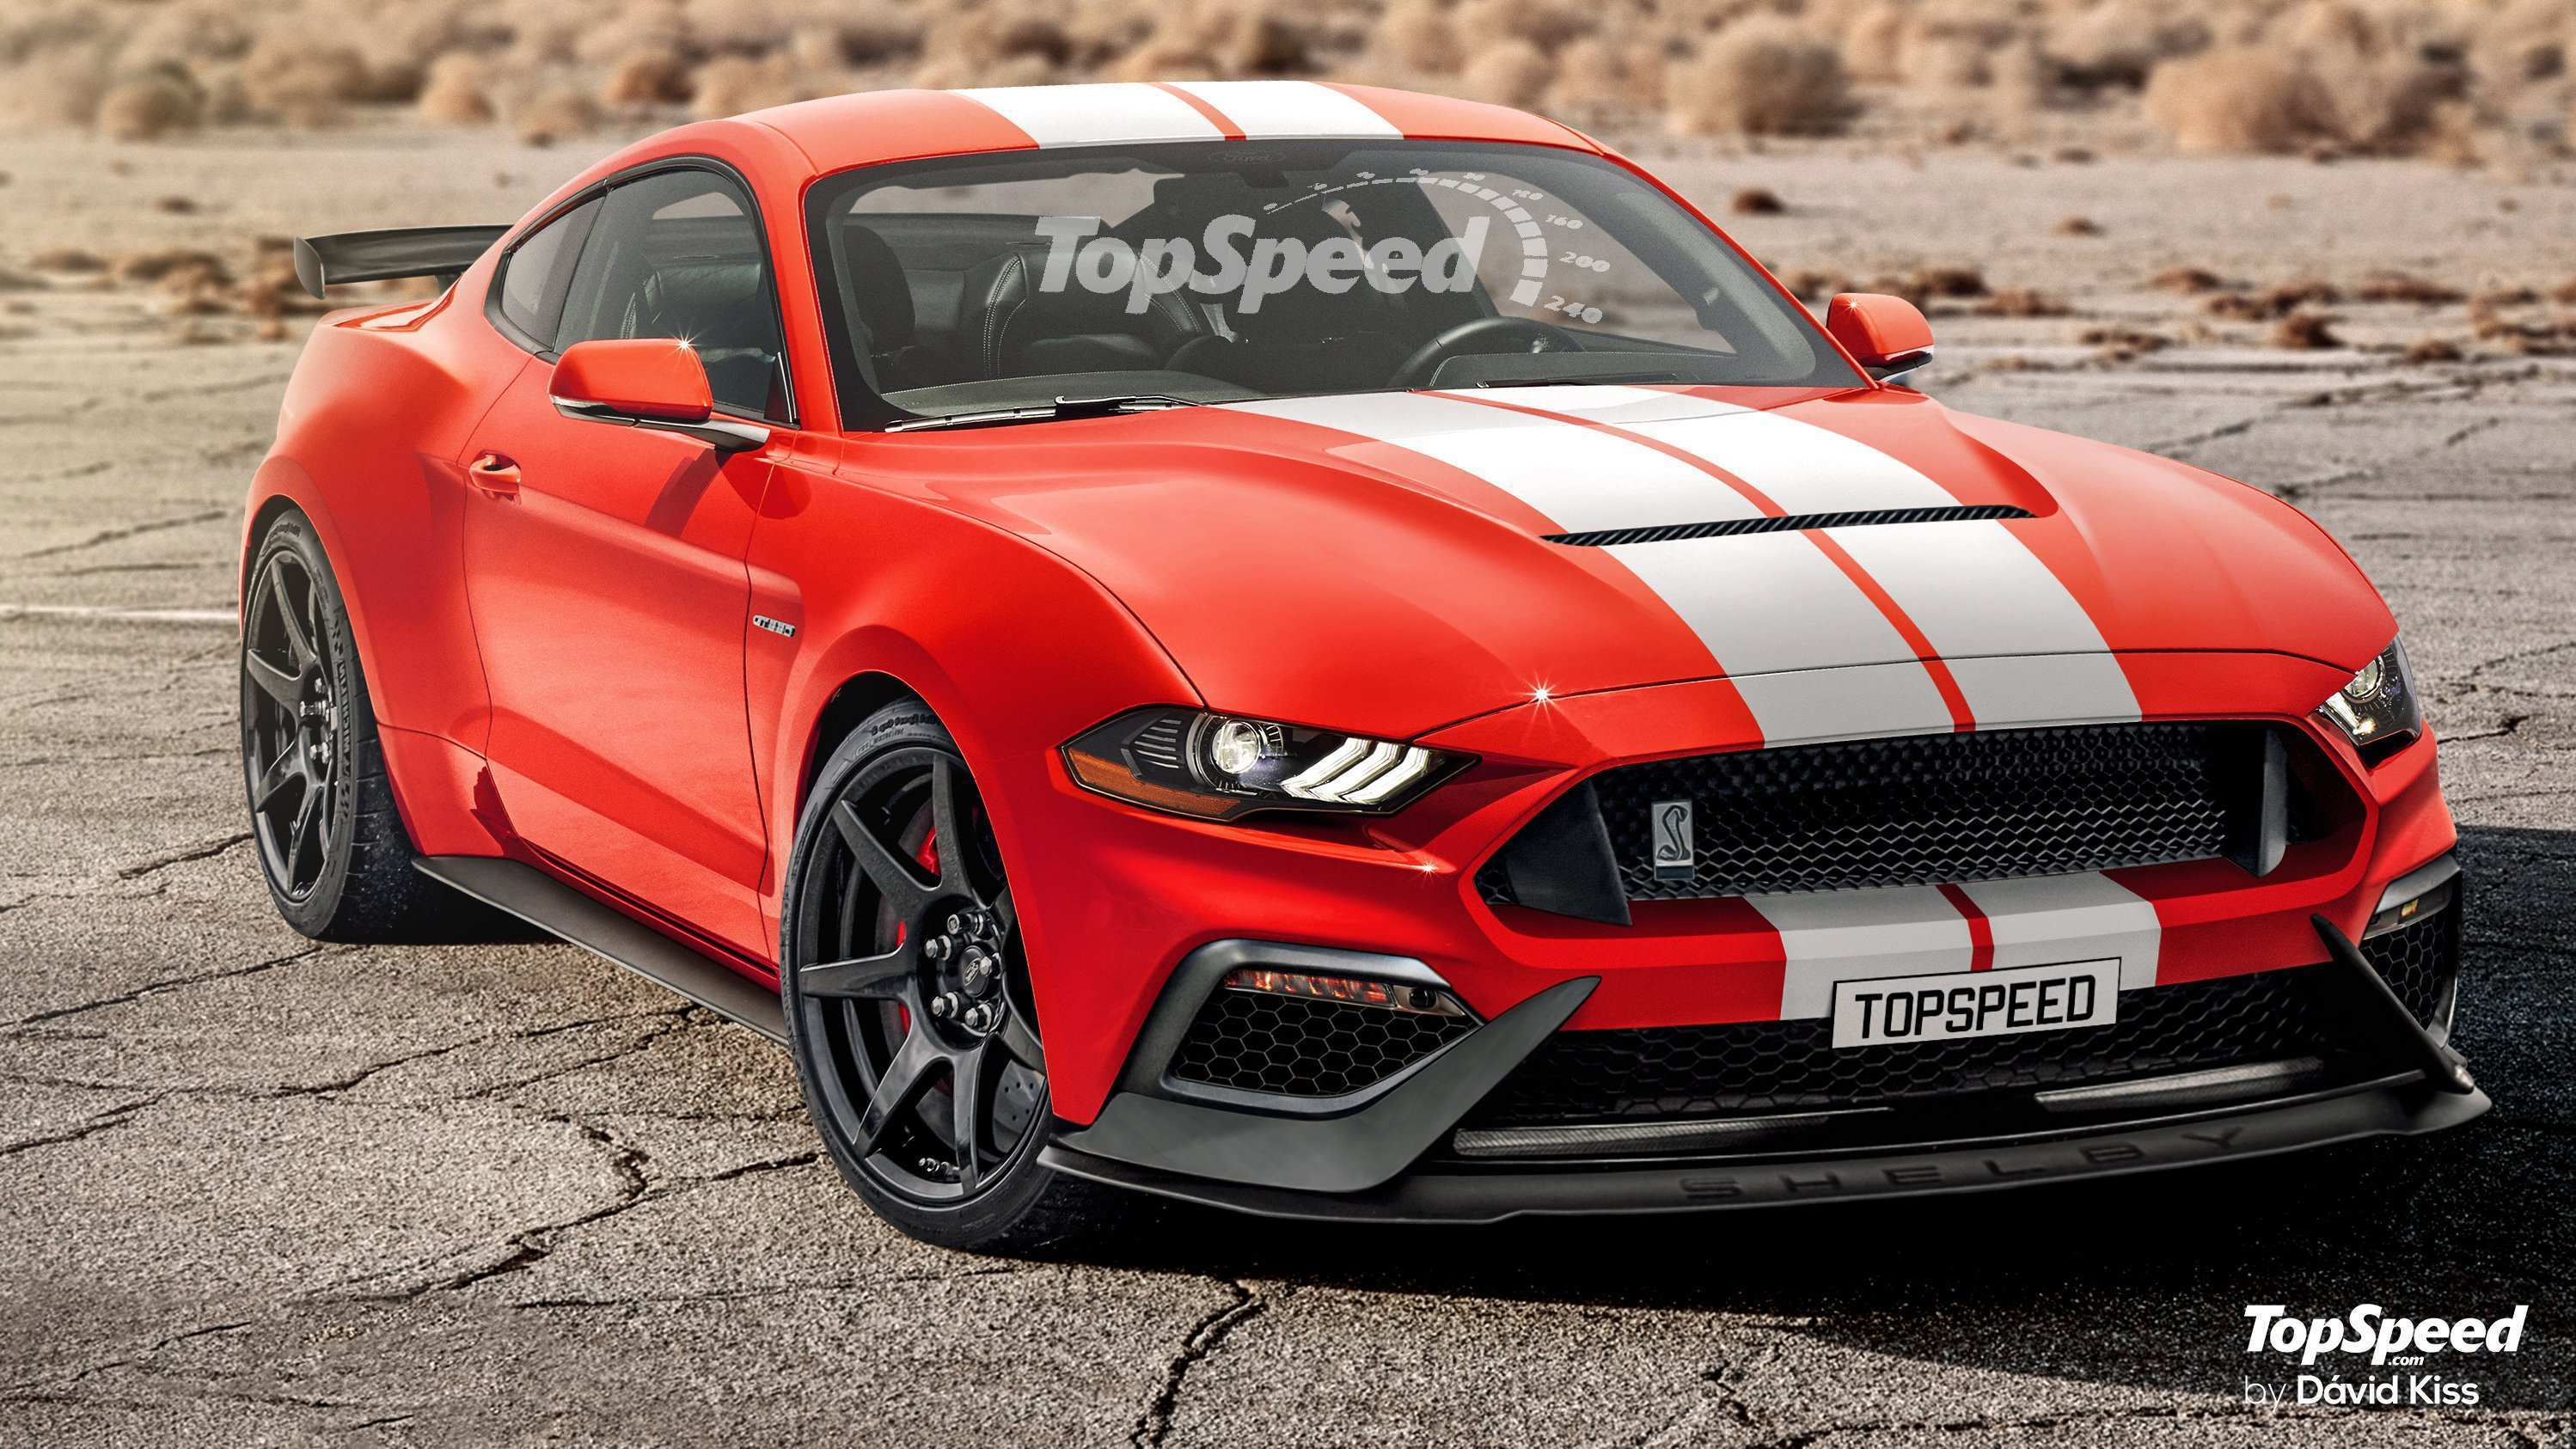 56 The Best 2019 Ford Mustang Shelby Gt500 Reviews